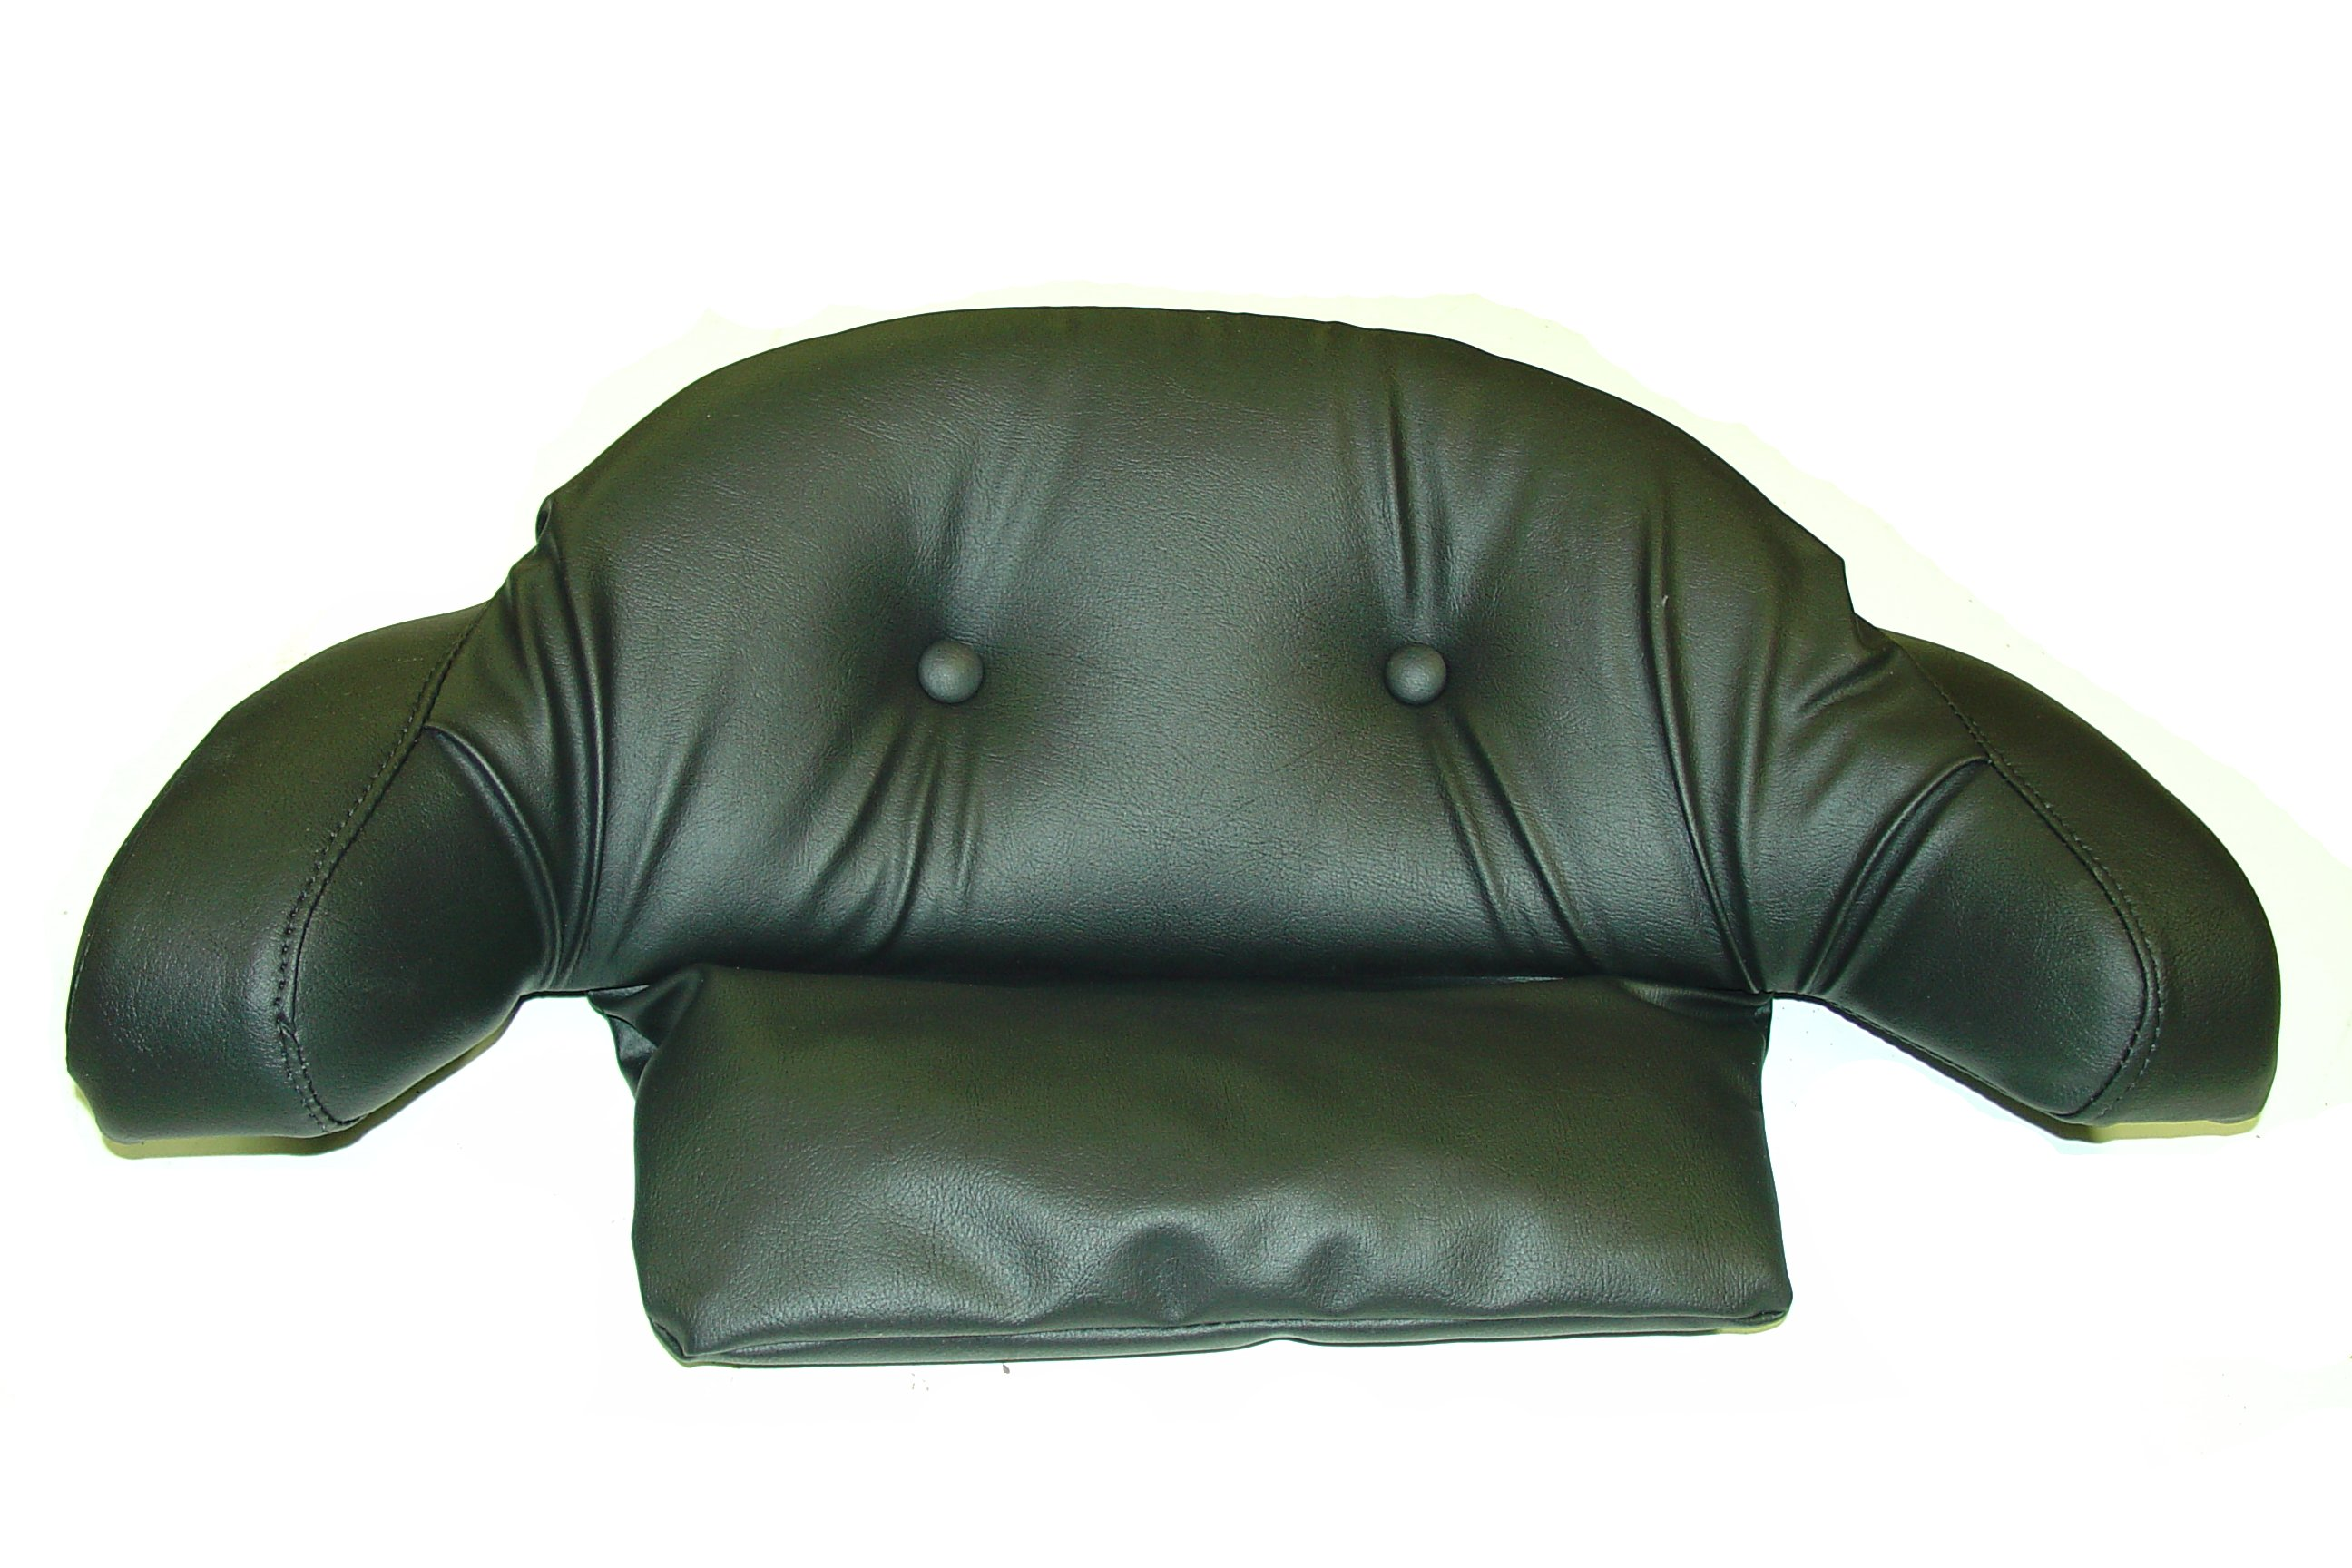 mesmerizing backrest pillow with arms with black leather